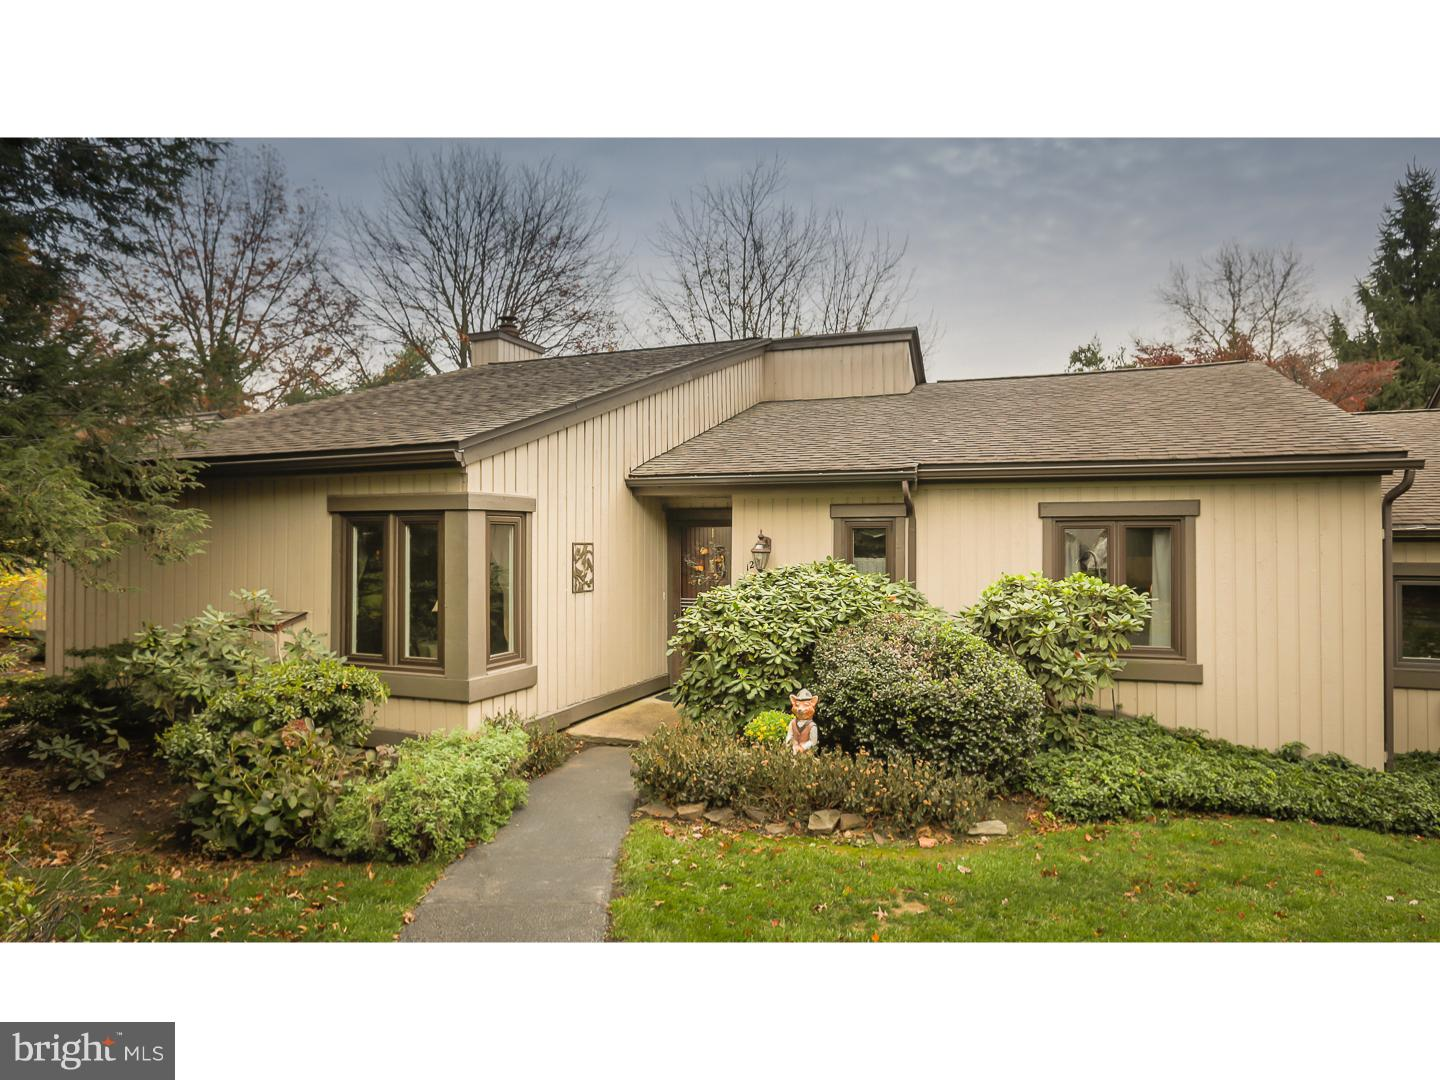 122 Chandler Drive West Chester , PA 19380